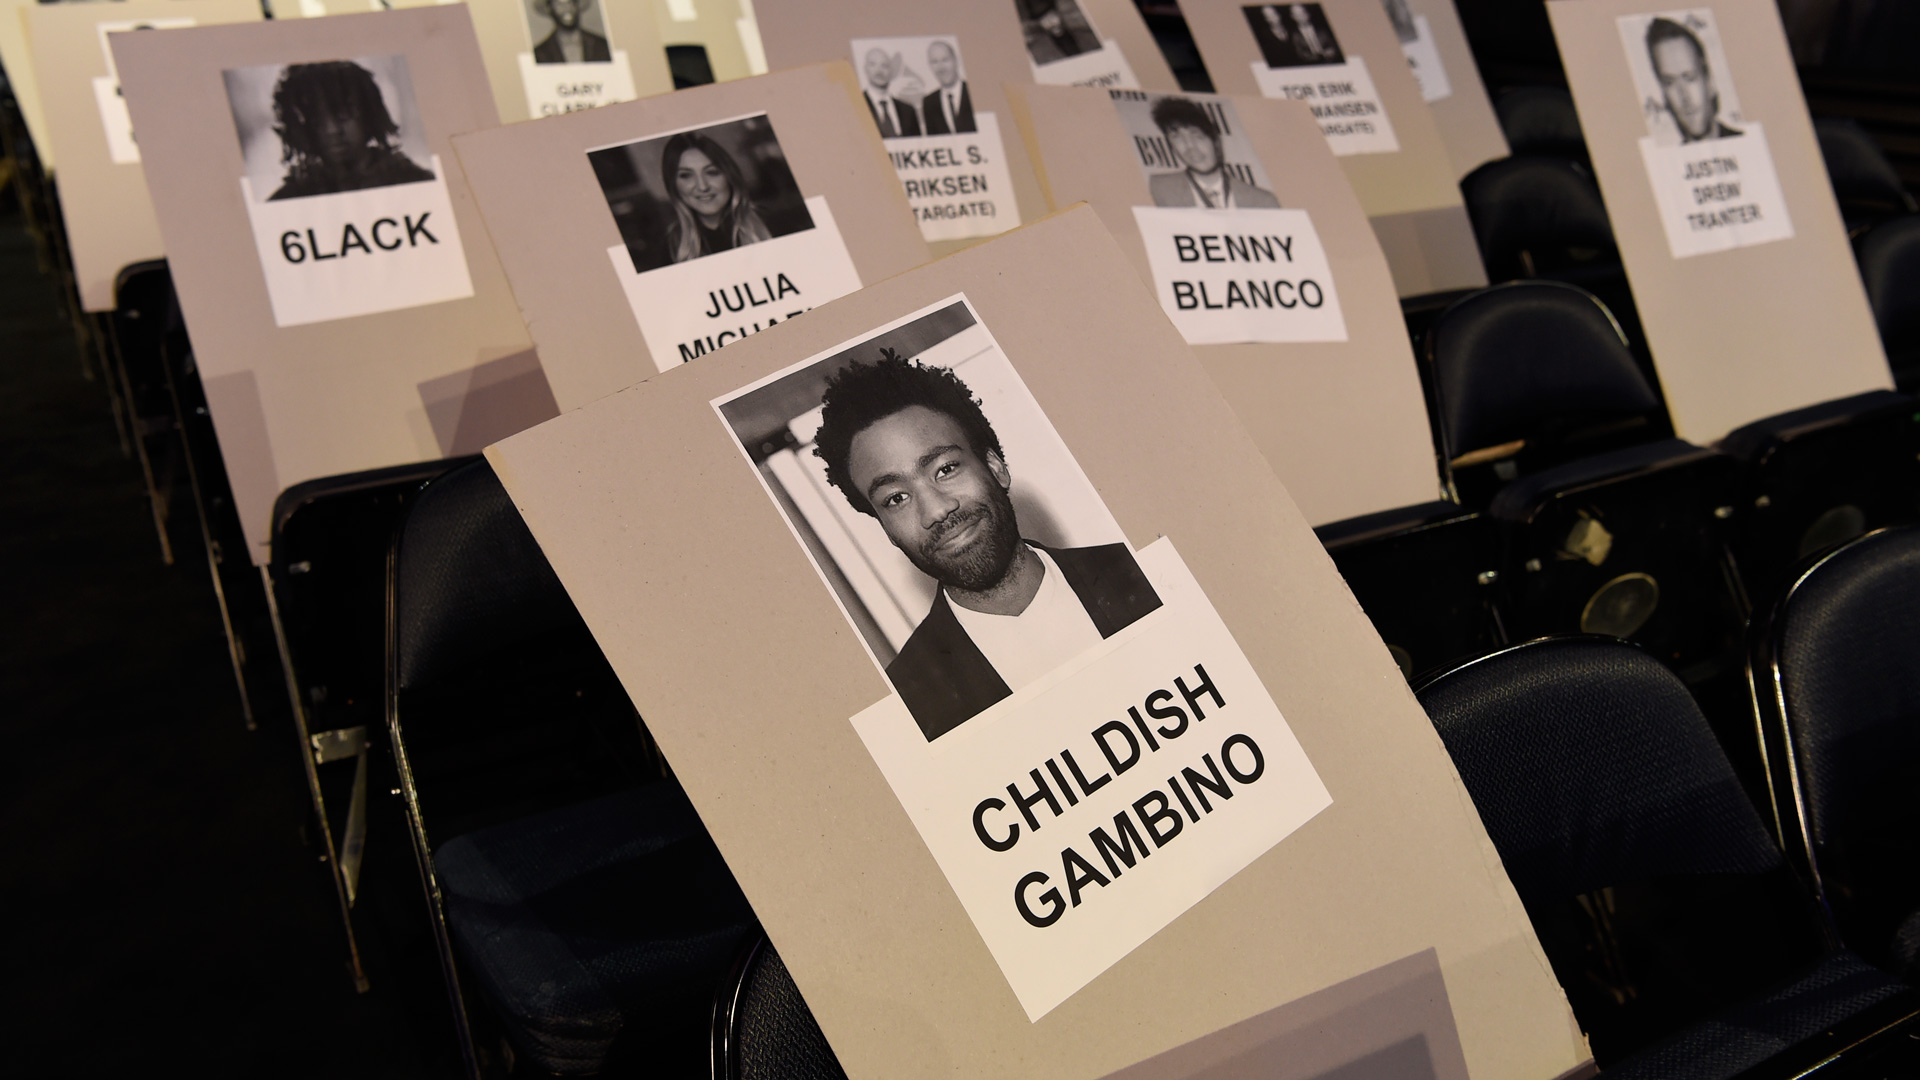 Here's where nominee and performer Childish Gambino will be seated during the night.